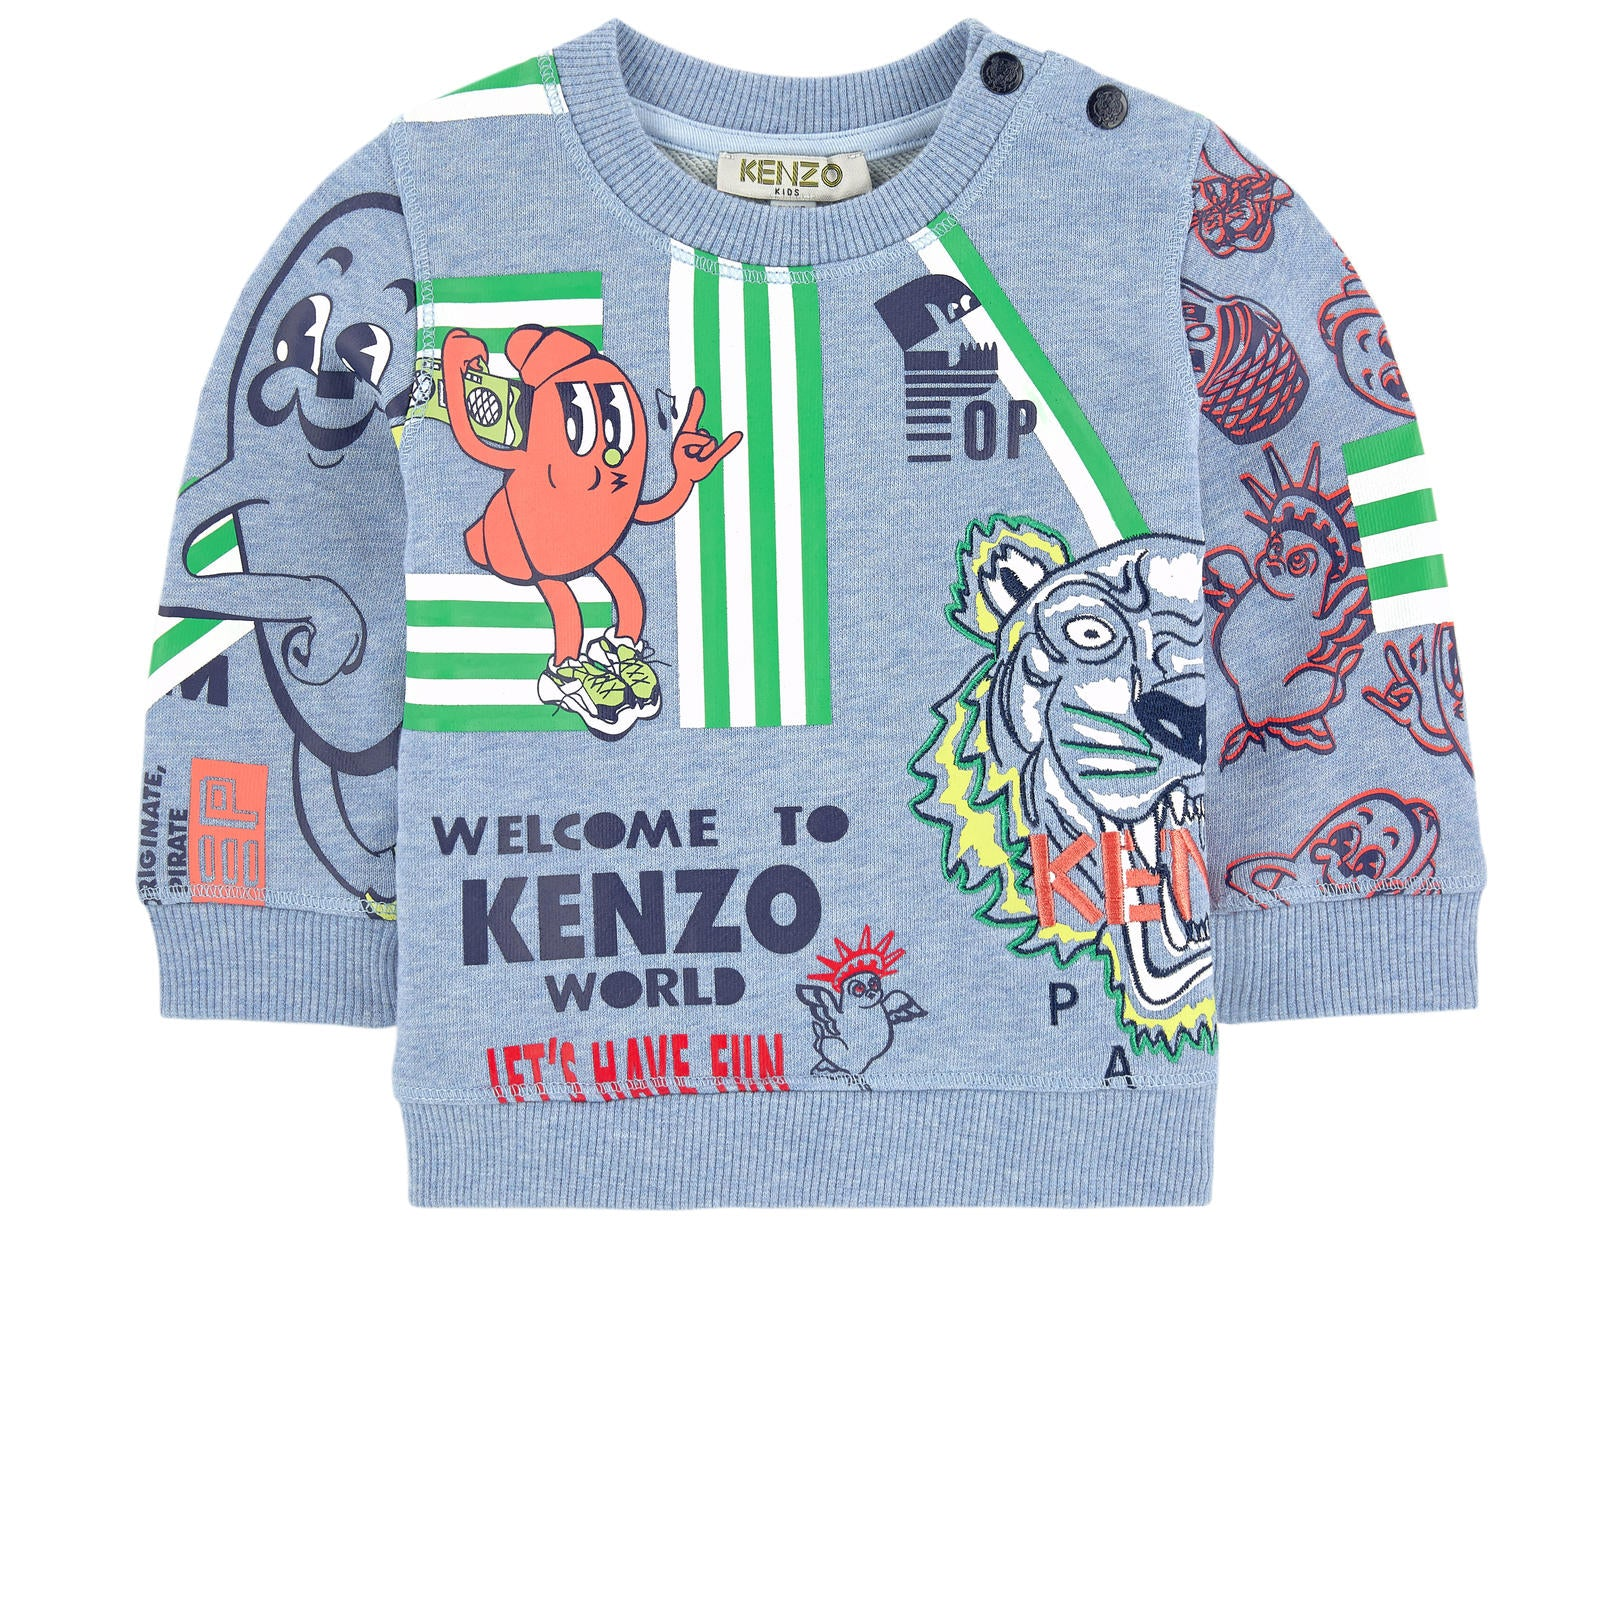 Kenzo Kids Graphic sweatshirt - Food Fiesta